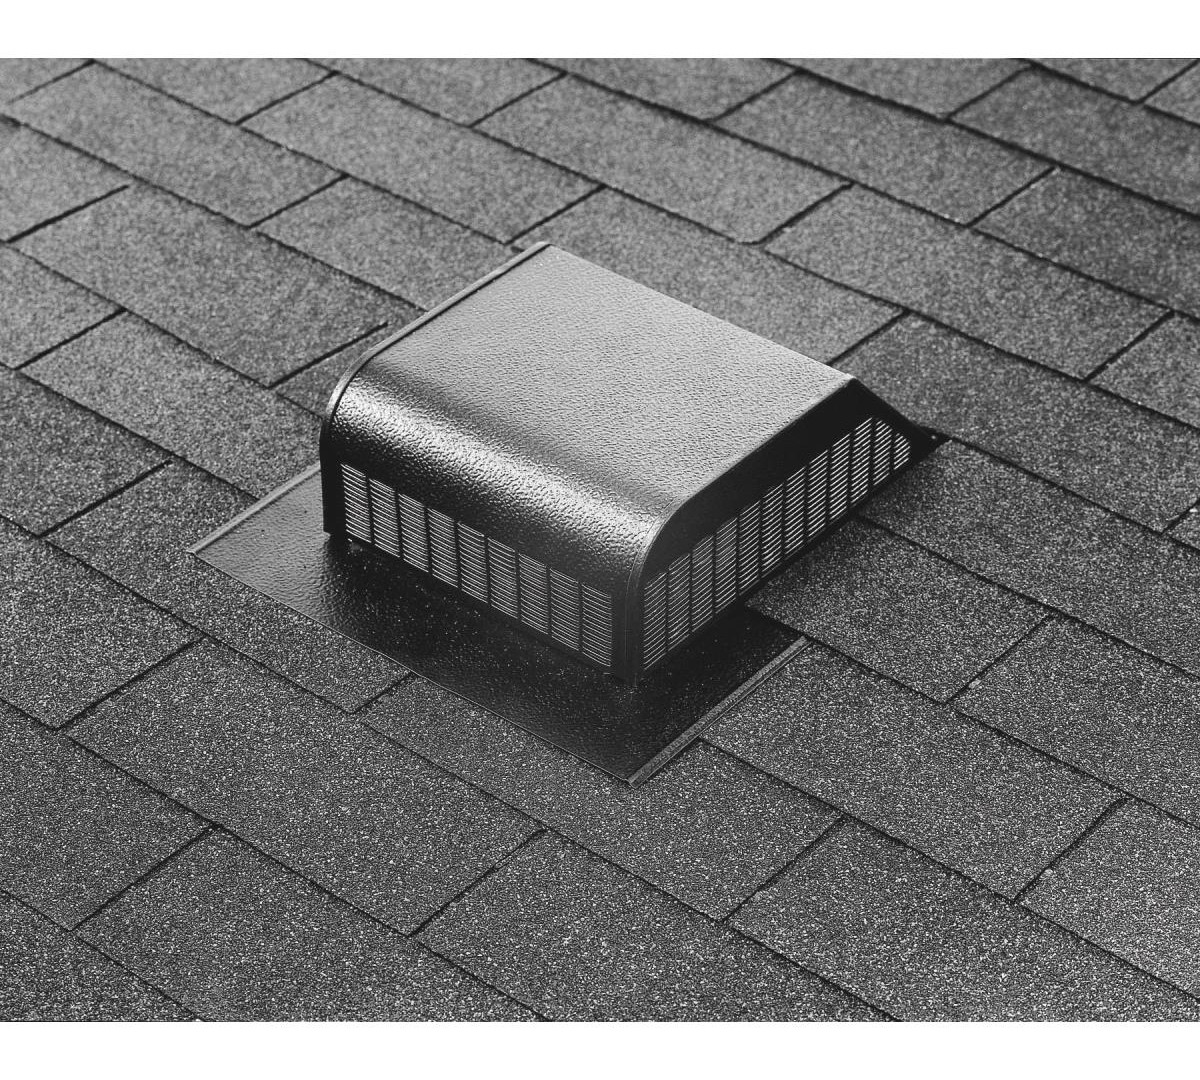 Metal Slant Back Roof Vent